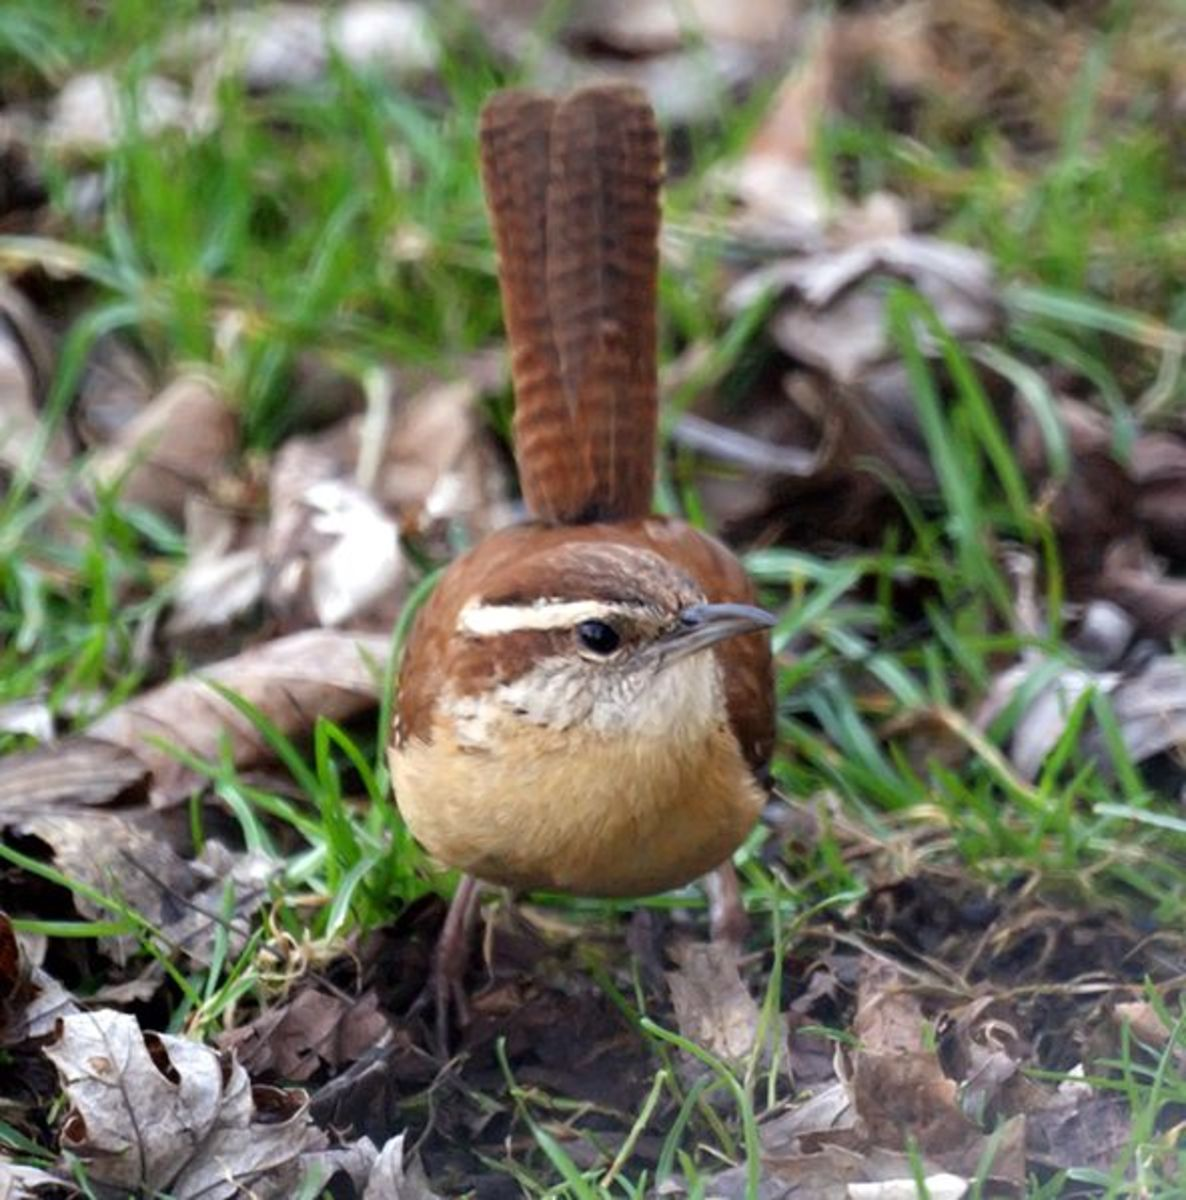 Carolina Wrens have a distinctive white eyebrow and upturned tail. Similar species include Bewicks Wren and House Wren.